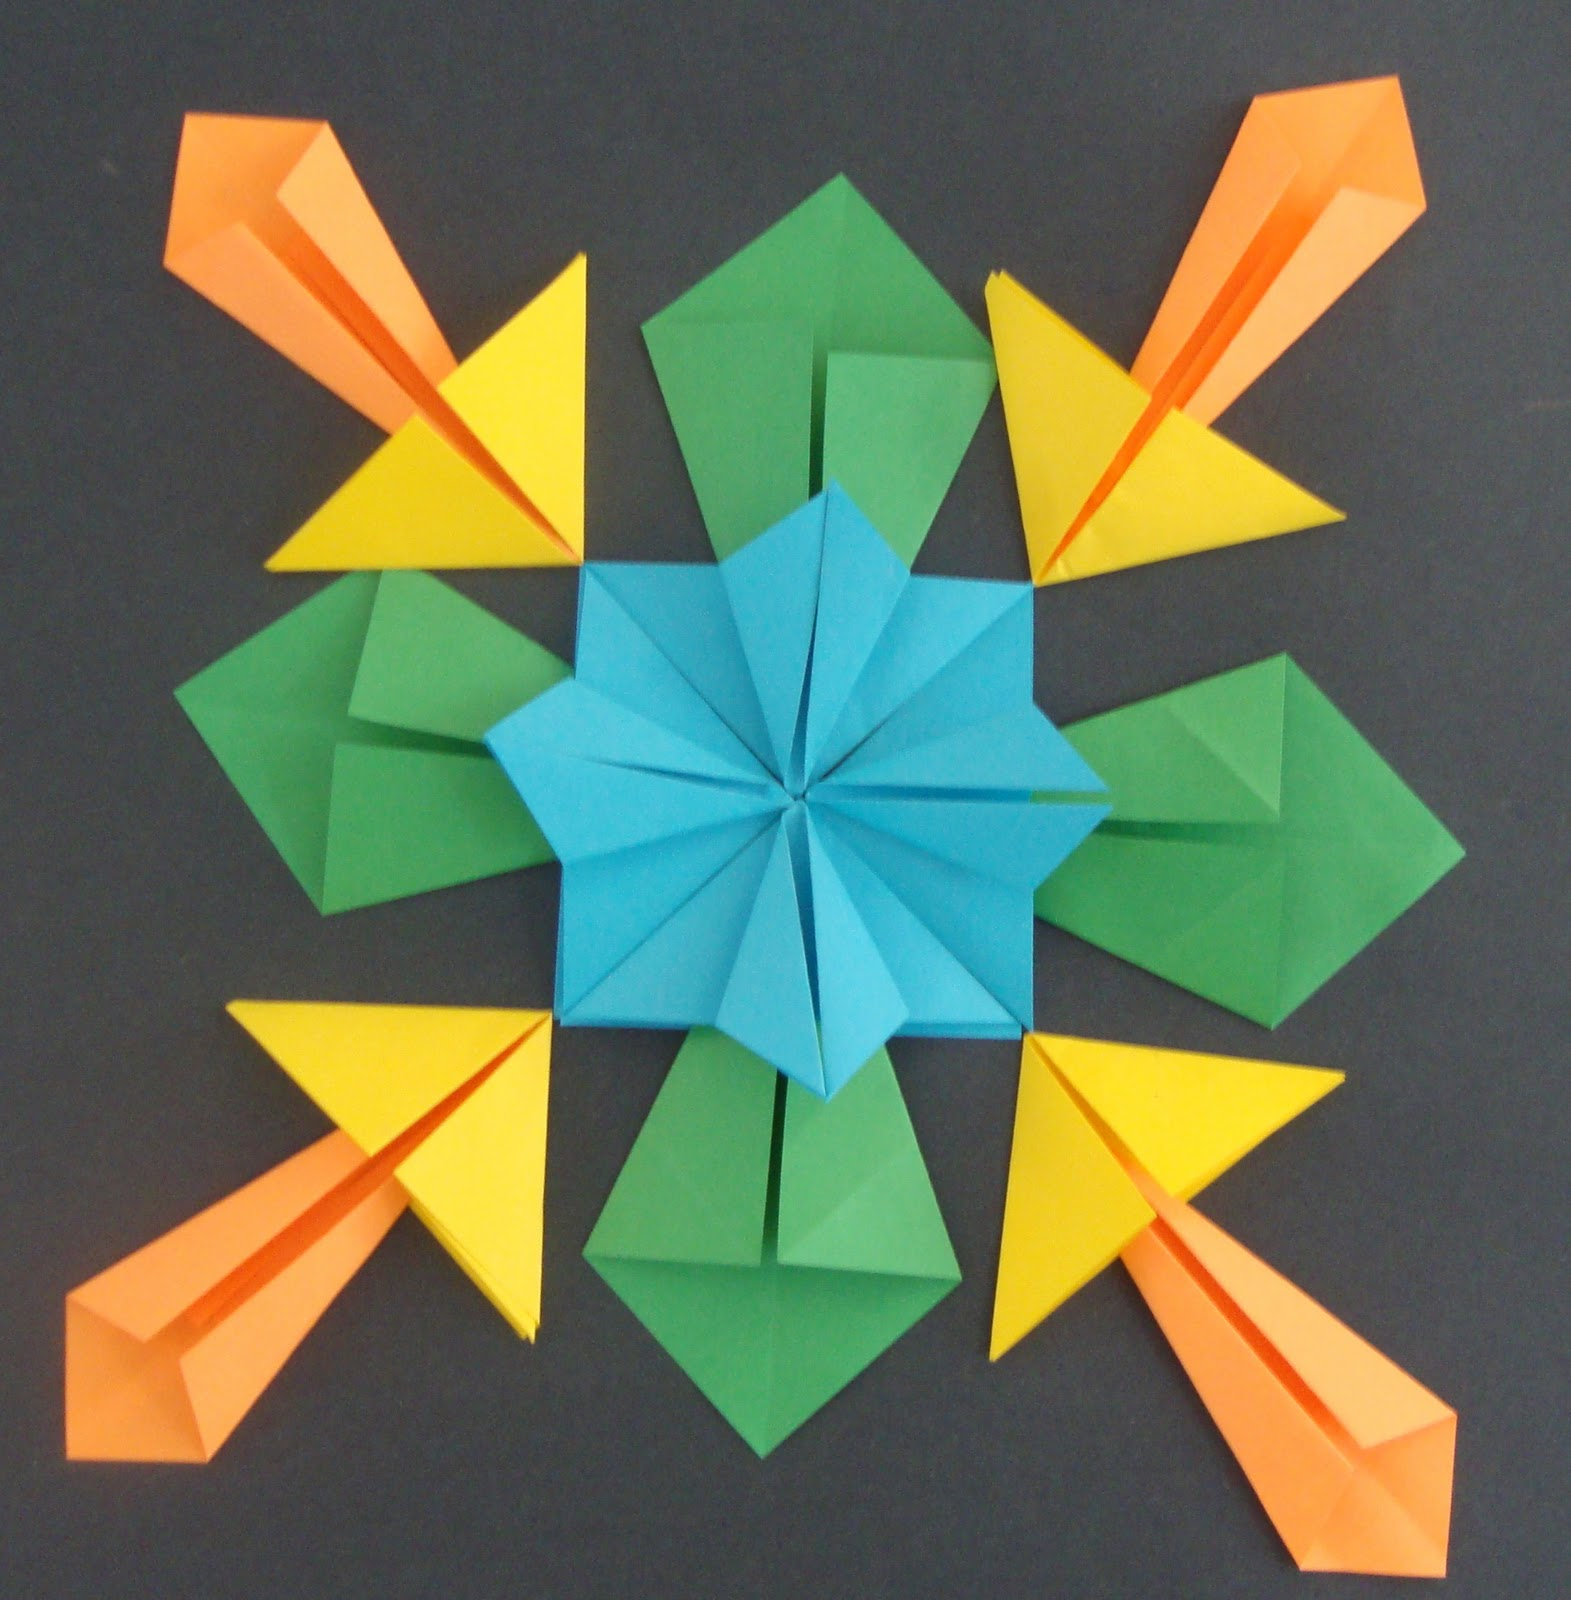 Art Paper Scissors Glue Symmetrical Origami